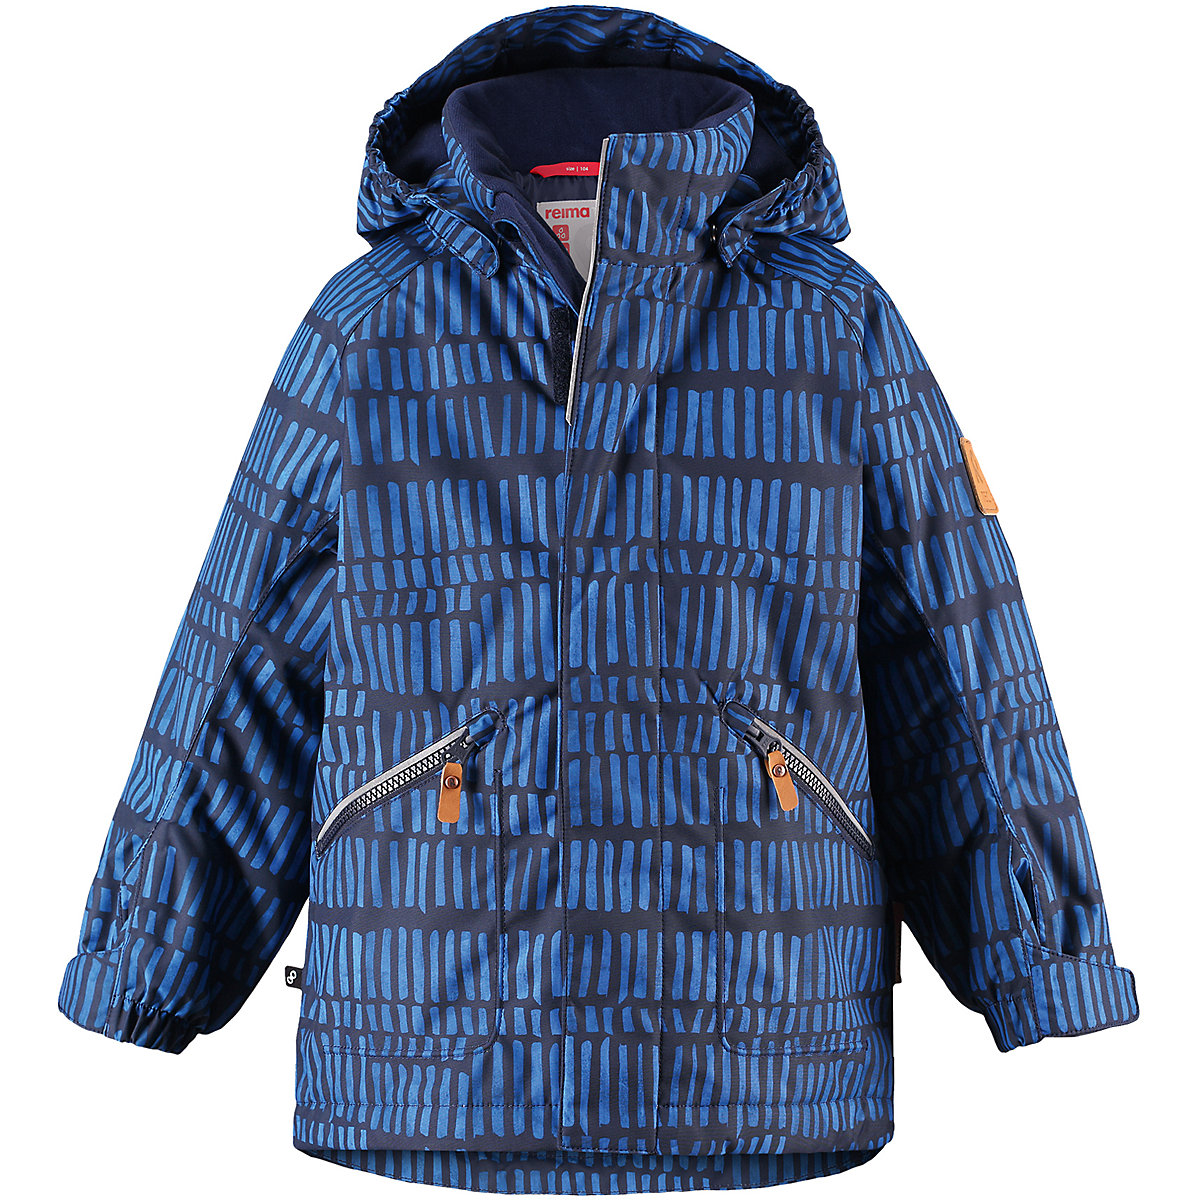 REIMA Jackets & Coats 8688719 for boys baby clothing winter warm boy girl jacket Polyester duhan motorcycle jacket motocross jacket moto men windproof cold proof clothing motorbike protective gear for winter autumn